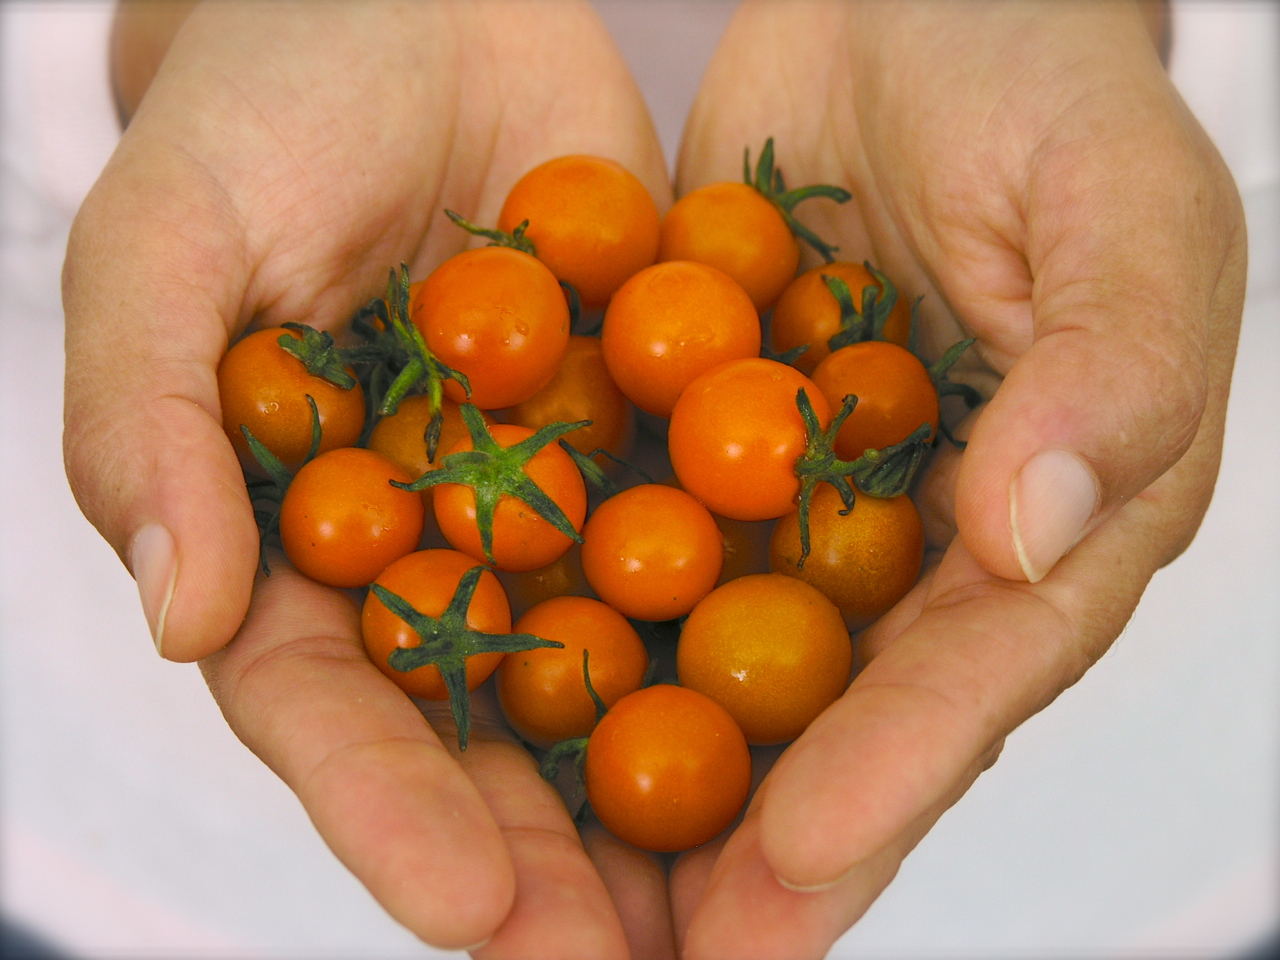 Oh, cheer up and eat some cherry tomatoes!